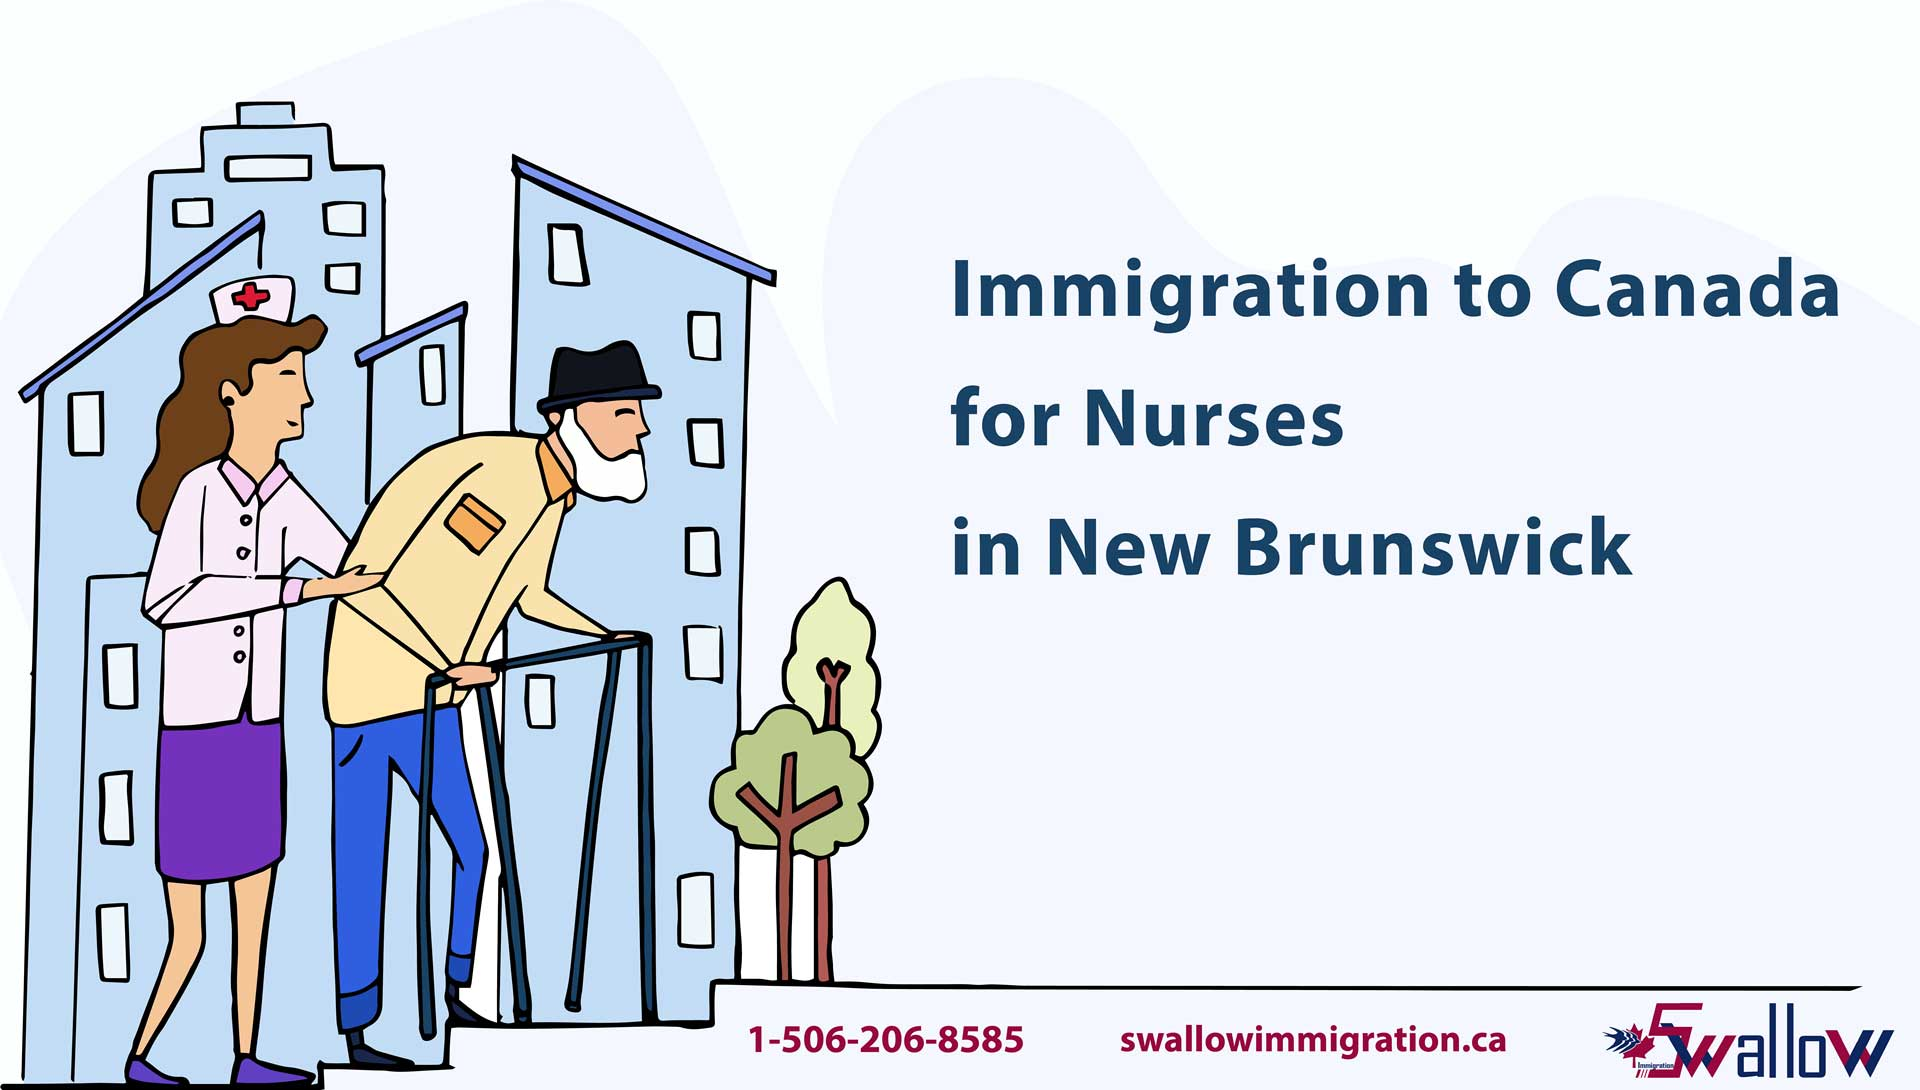 Immigration to Canada for Nurses in New Brunswick